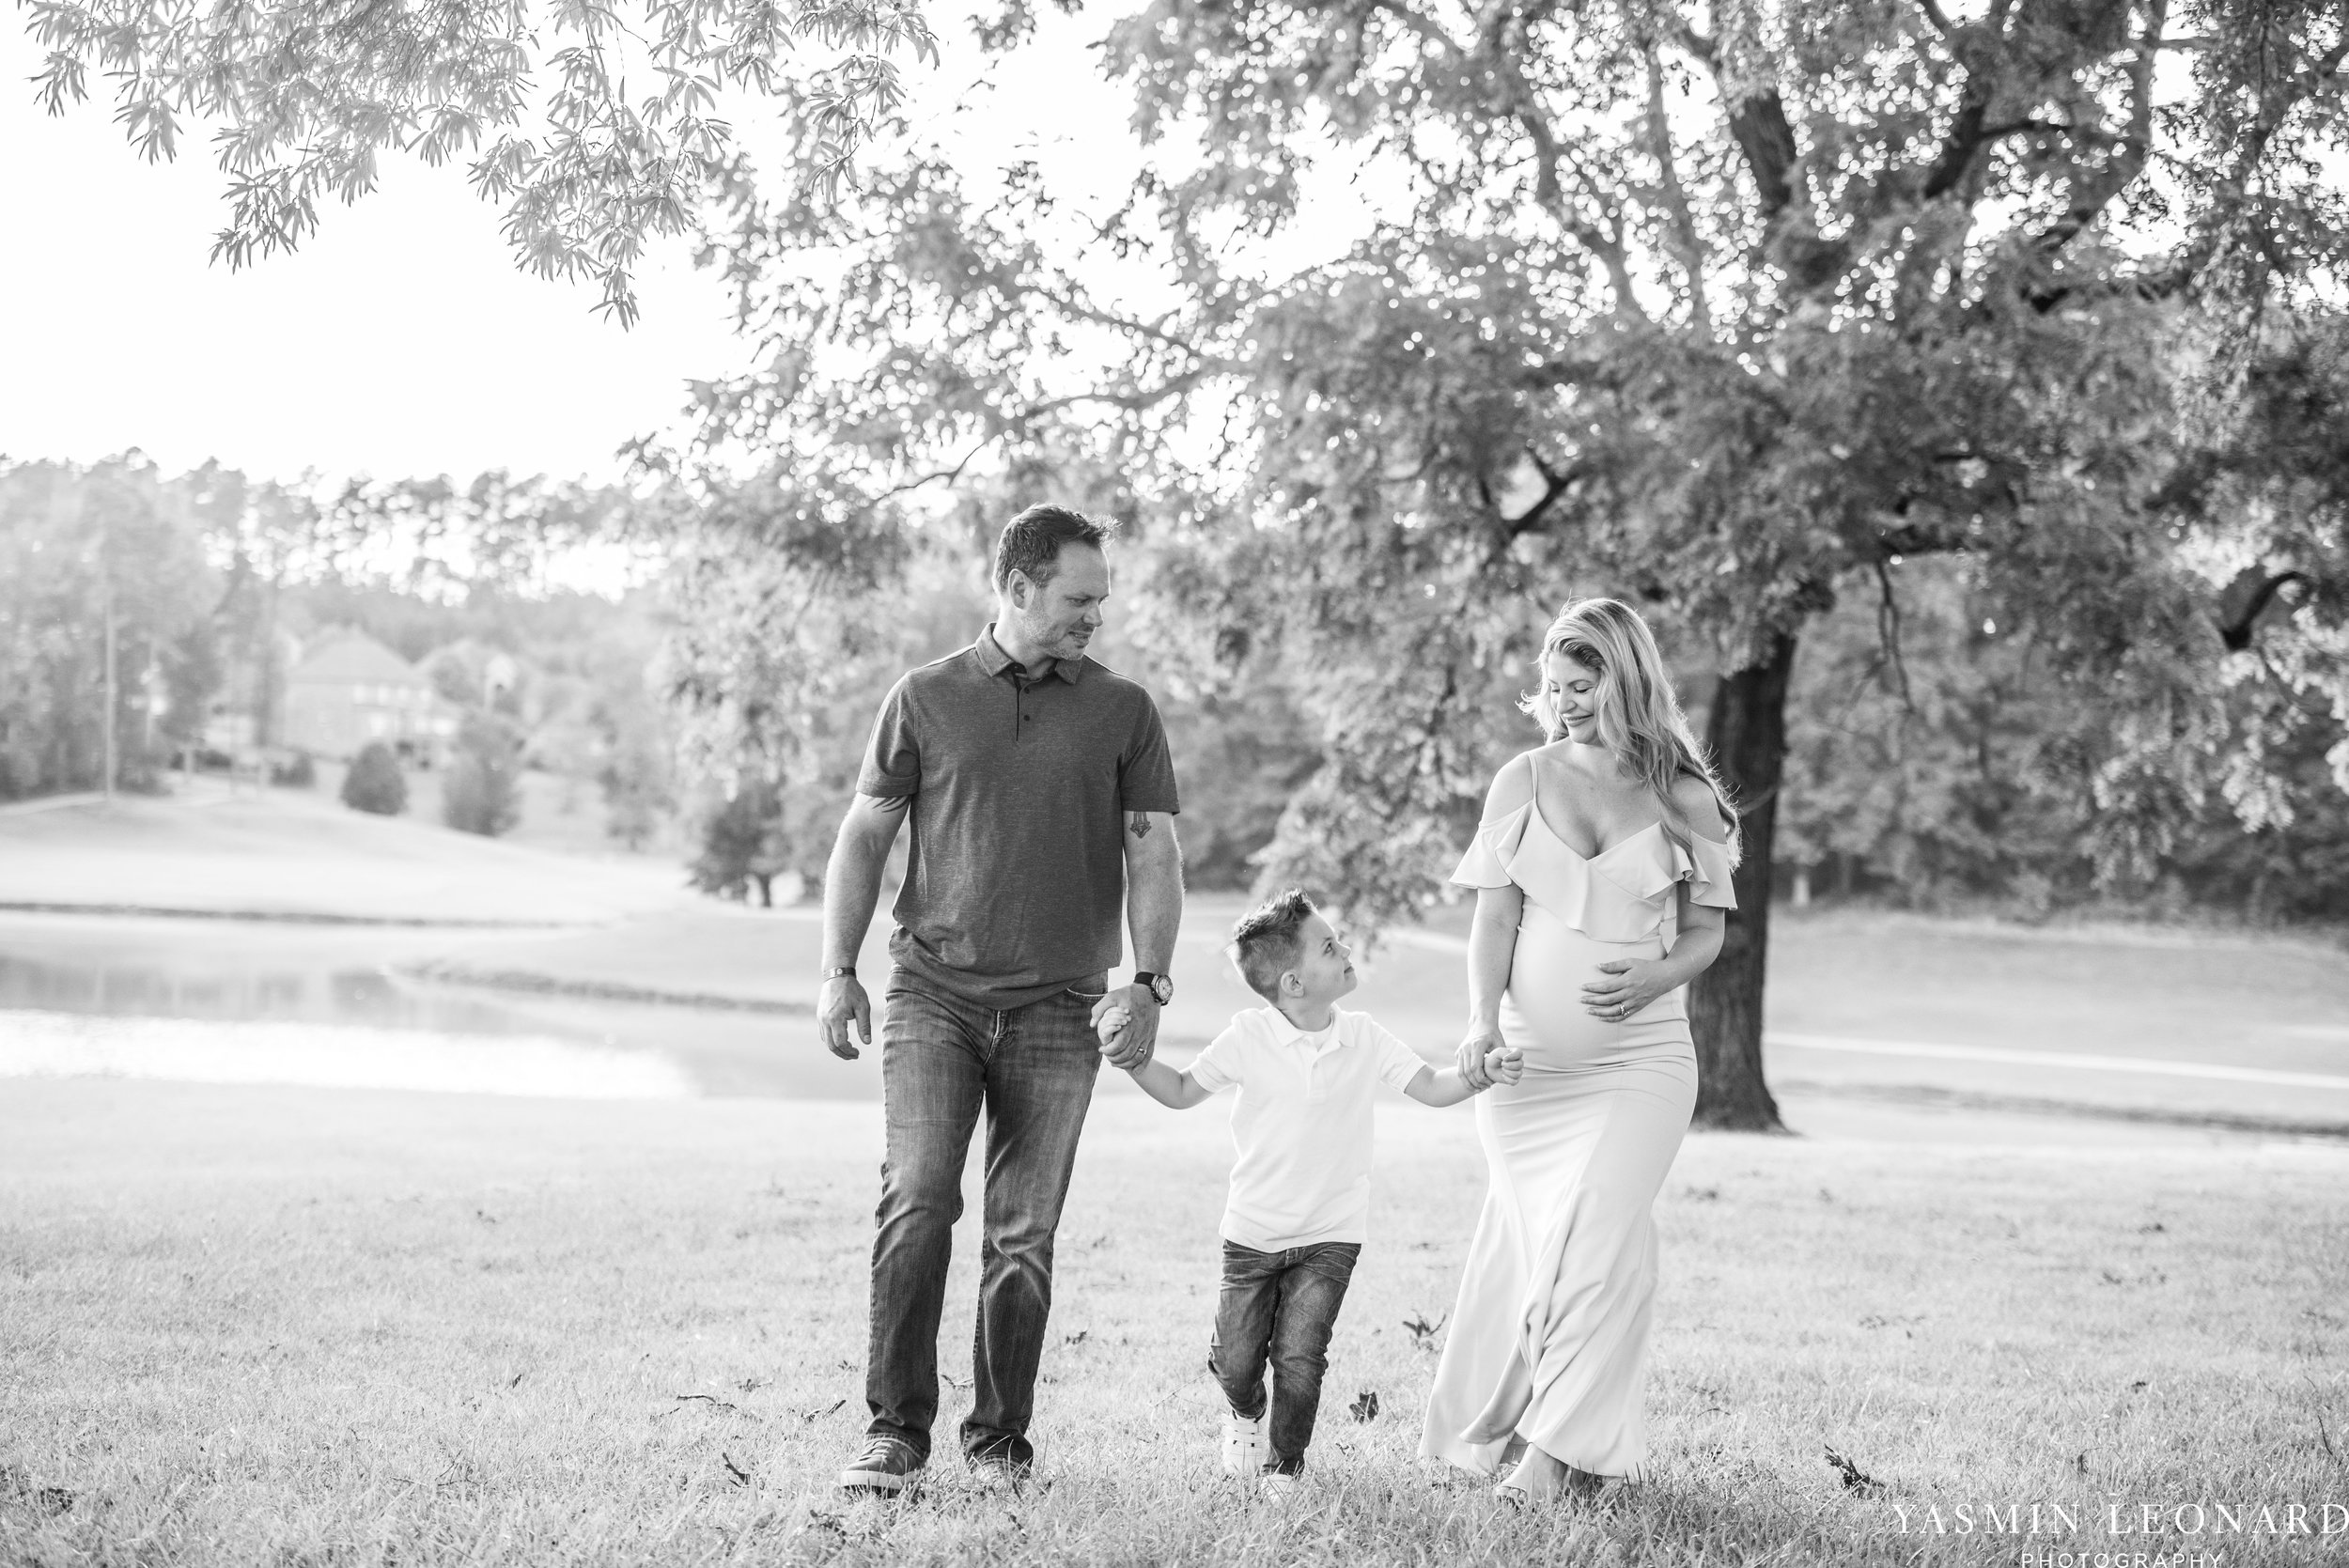 Maternity Session - High Point Maternity Session - NC Family Photographer - NC Photographer - High Point Photographer - Maternity Ideas - Yasmin Leonard Photography-12.jpg